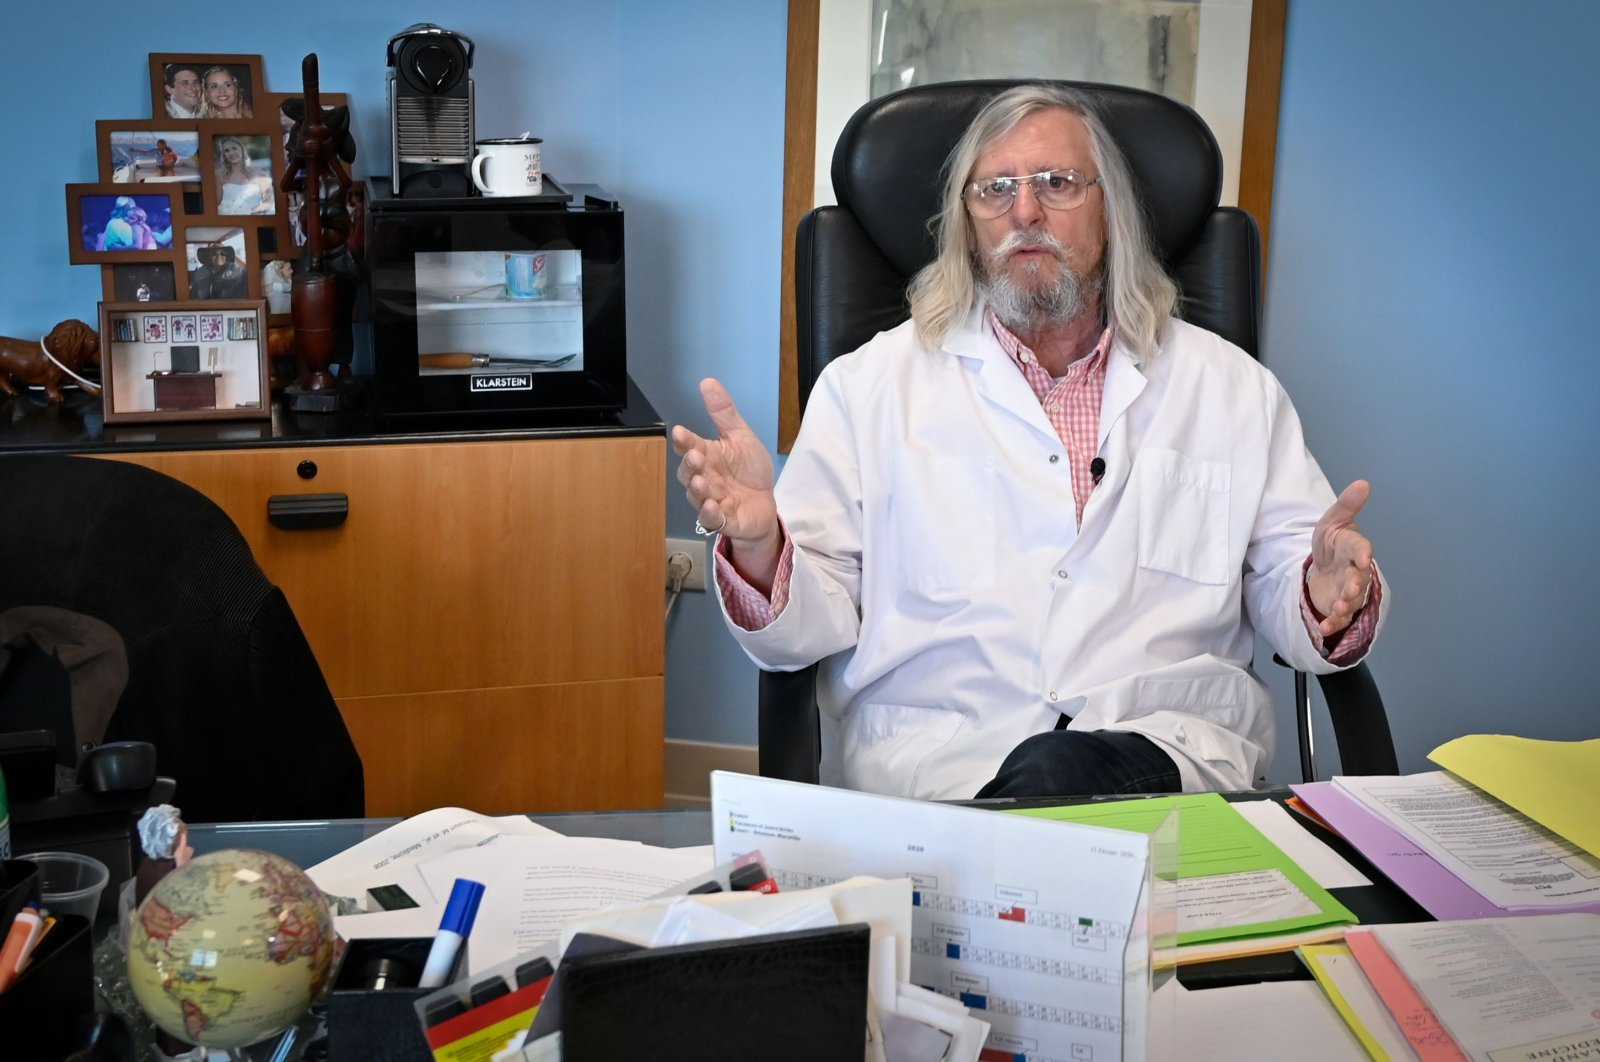 In this file photo taken on Feb. 26, 2020, French professor Didier Raoult, biologist and professor of microbiology, specialized in infectious diseases and director of IHU Mediterranee Infection Institute poses in his office in Marseille, southeastern France. (AFP Photo)